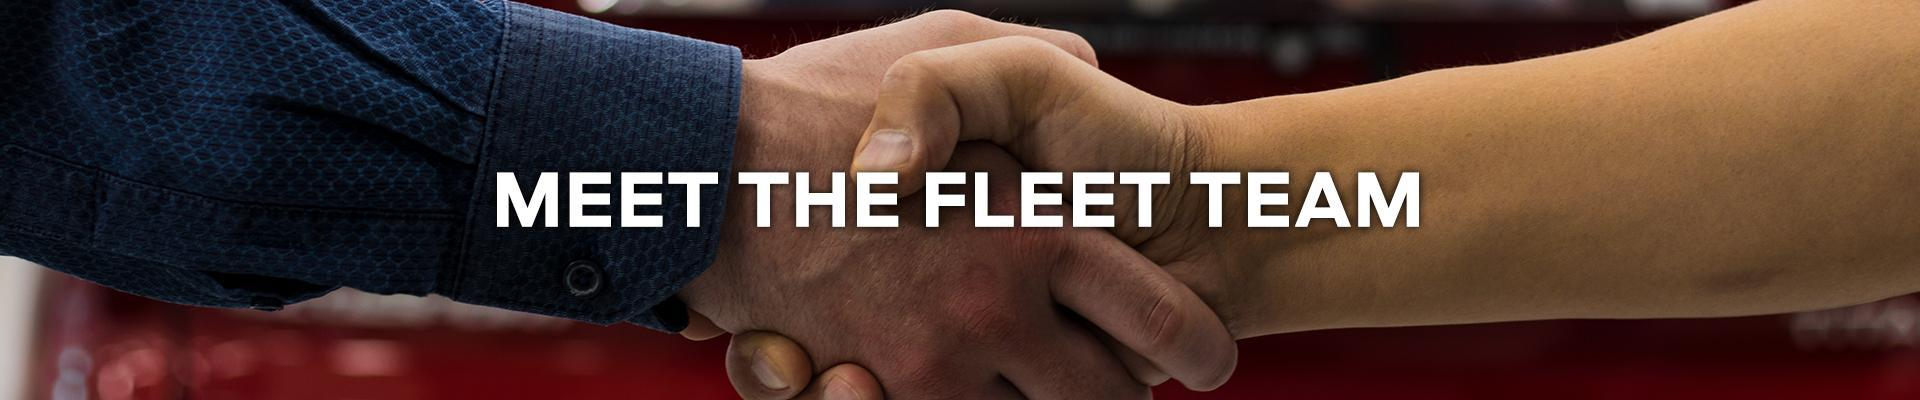 Meet the Fleet Team